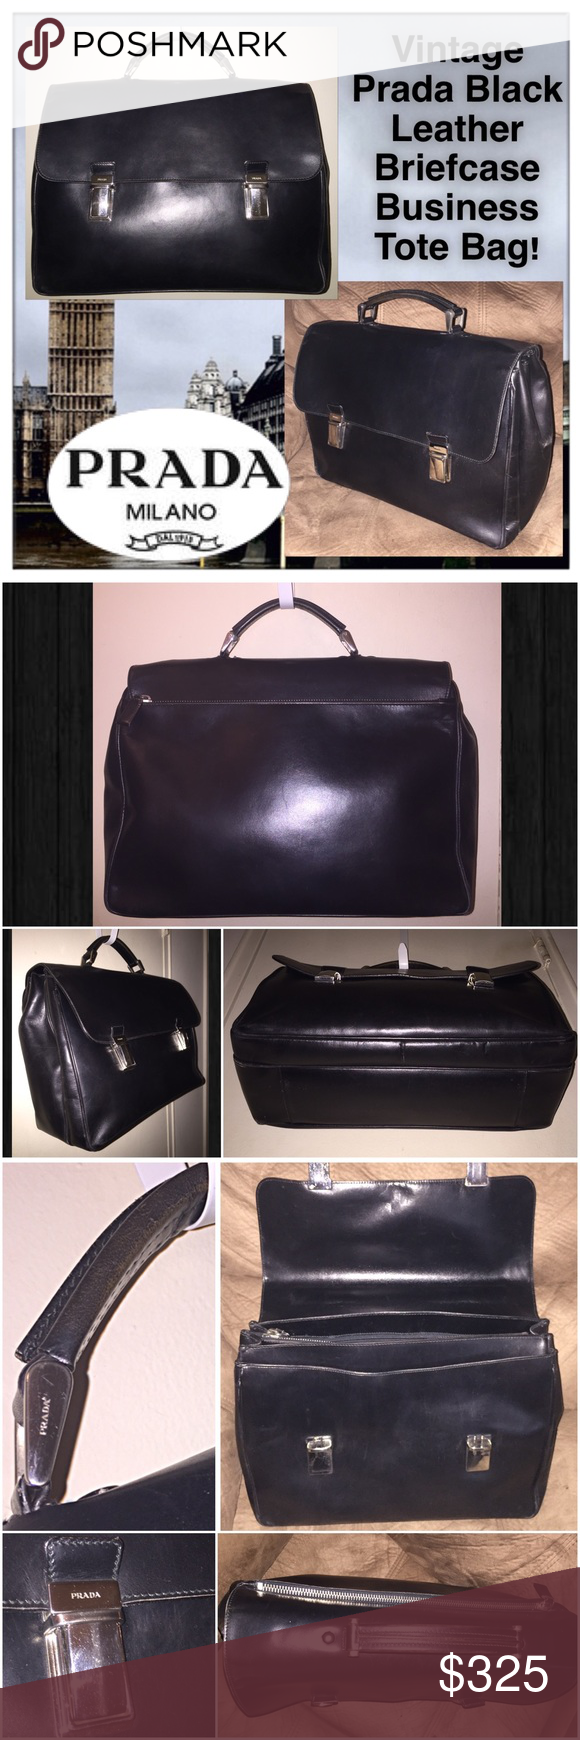 8115ba55702a VTG Prada UNISEX Blk Leather Briefcase Tote Bag! Vintage Prada Black  Leather Briefcase Business Tote